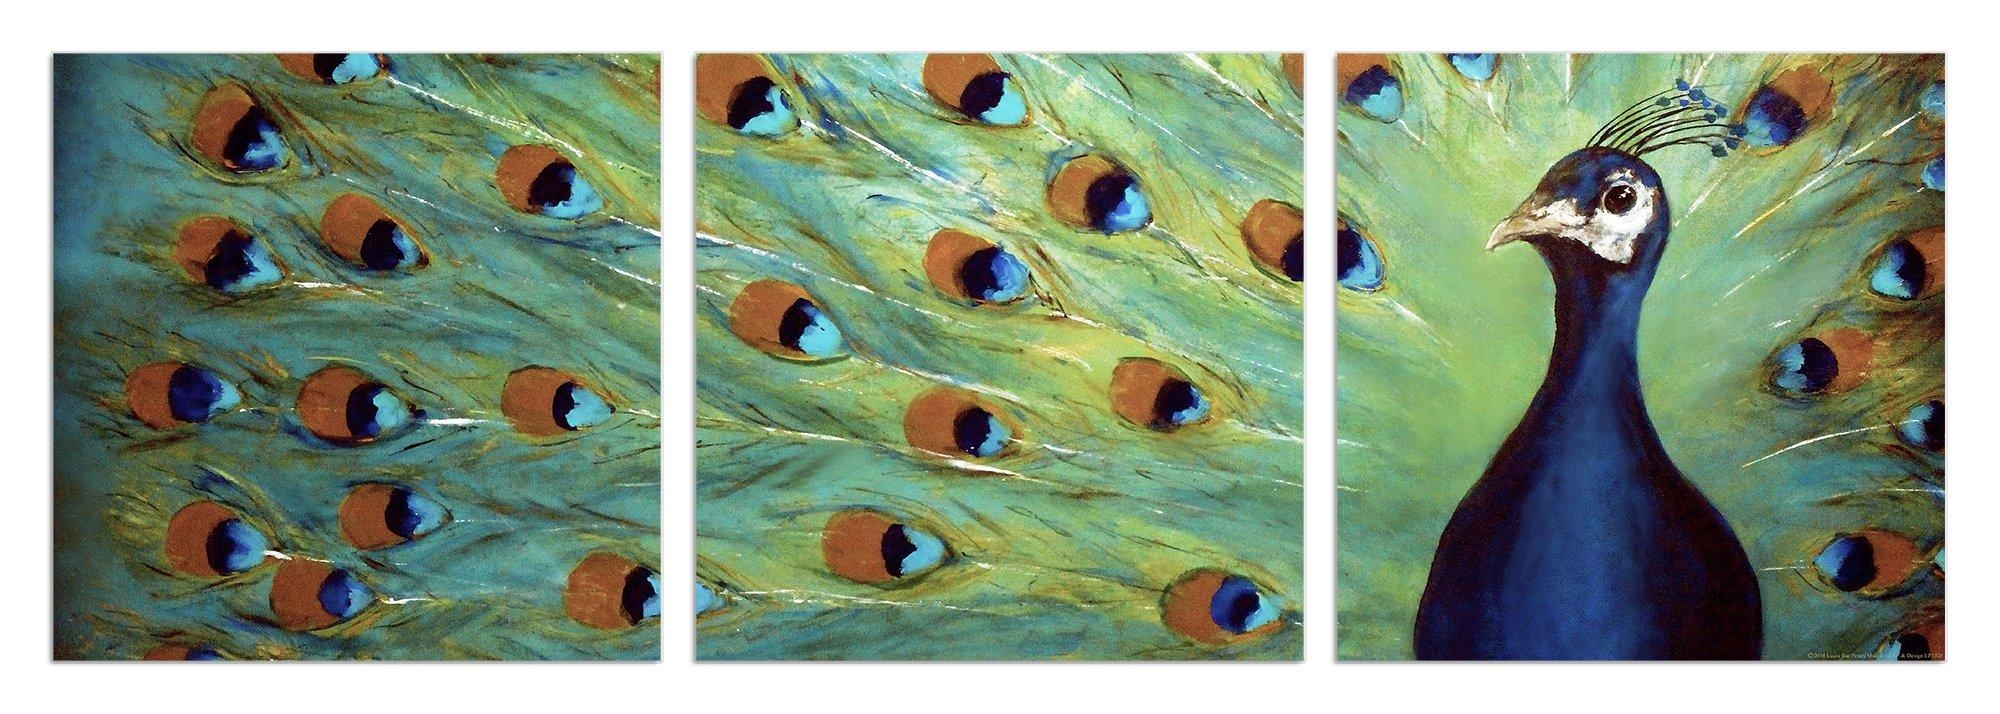 Stupell Industries Prized Peacock 3 Piece Triptych Canvas Wall Art Regarding 3 Piece Wall Art Sets (View 18 of 20)